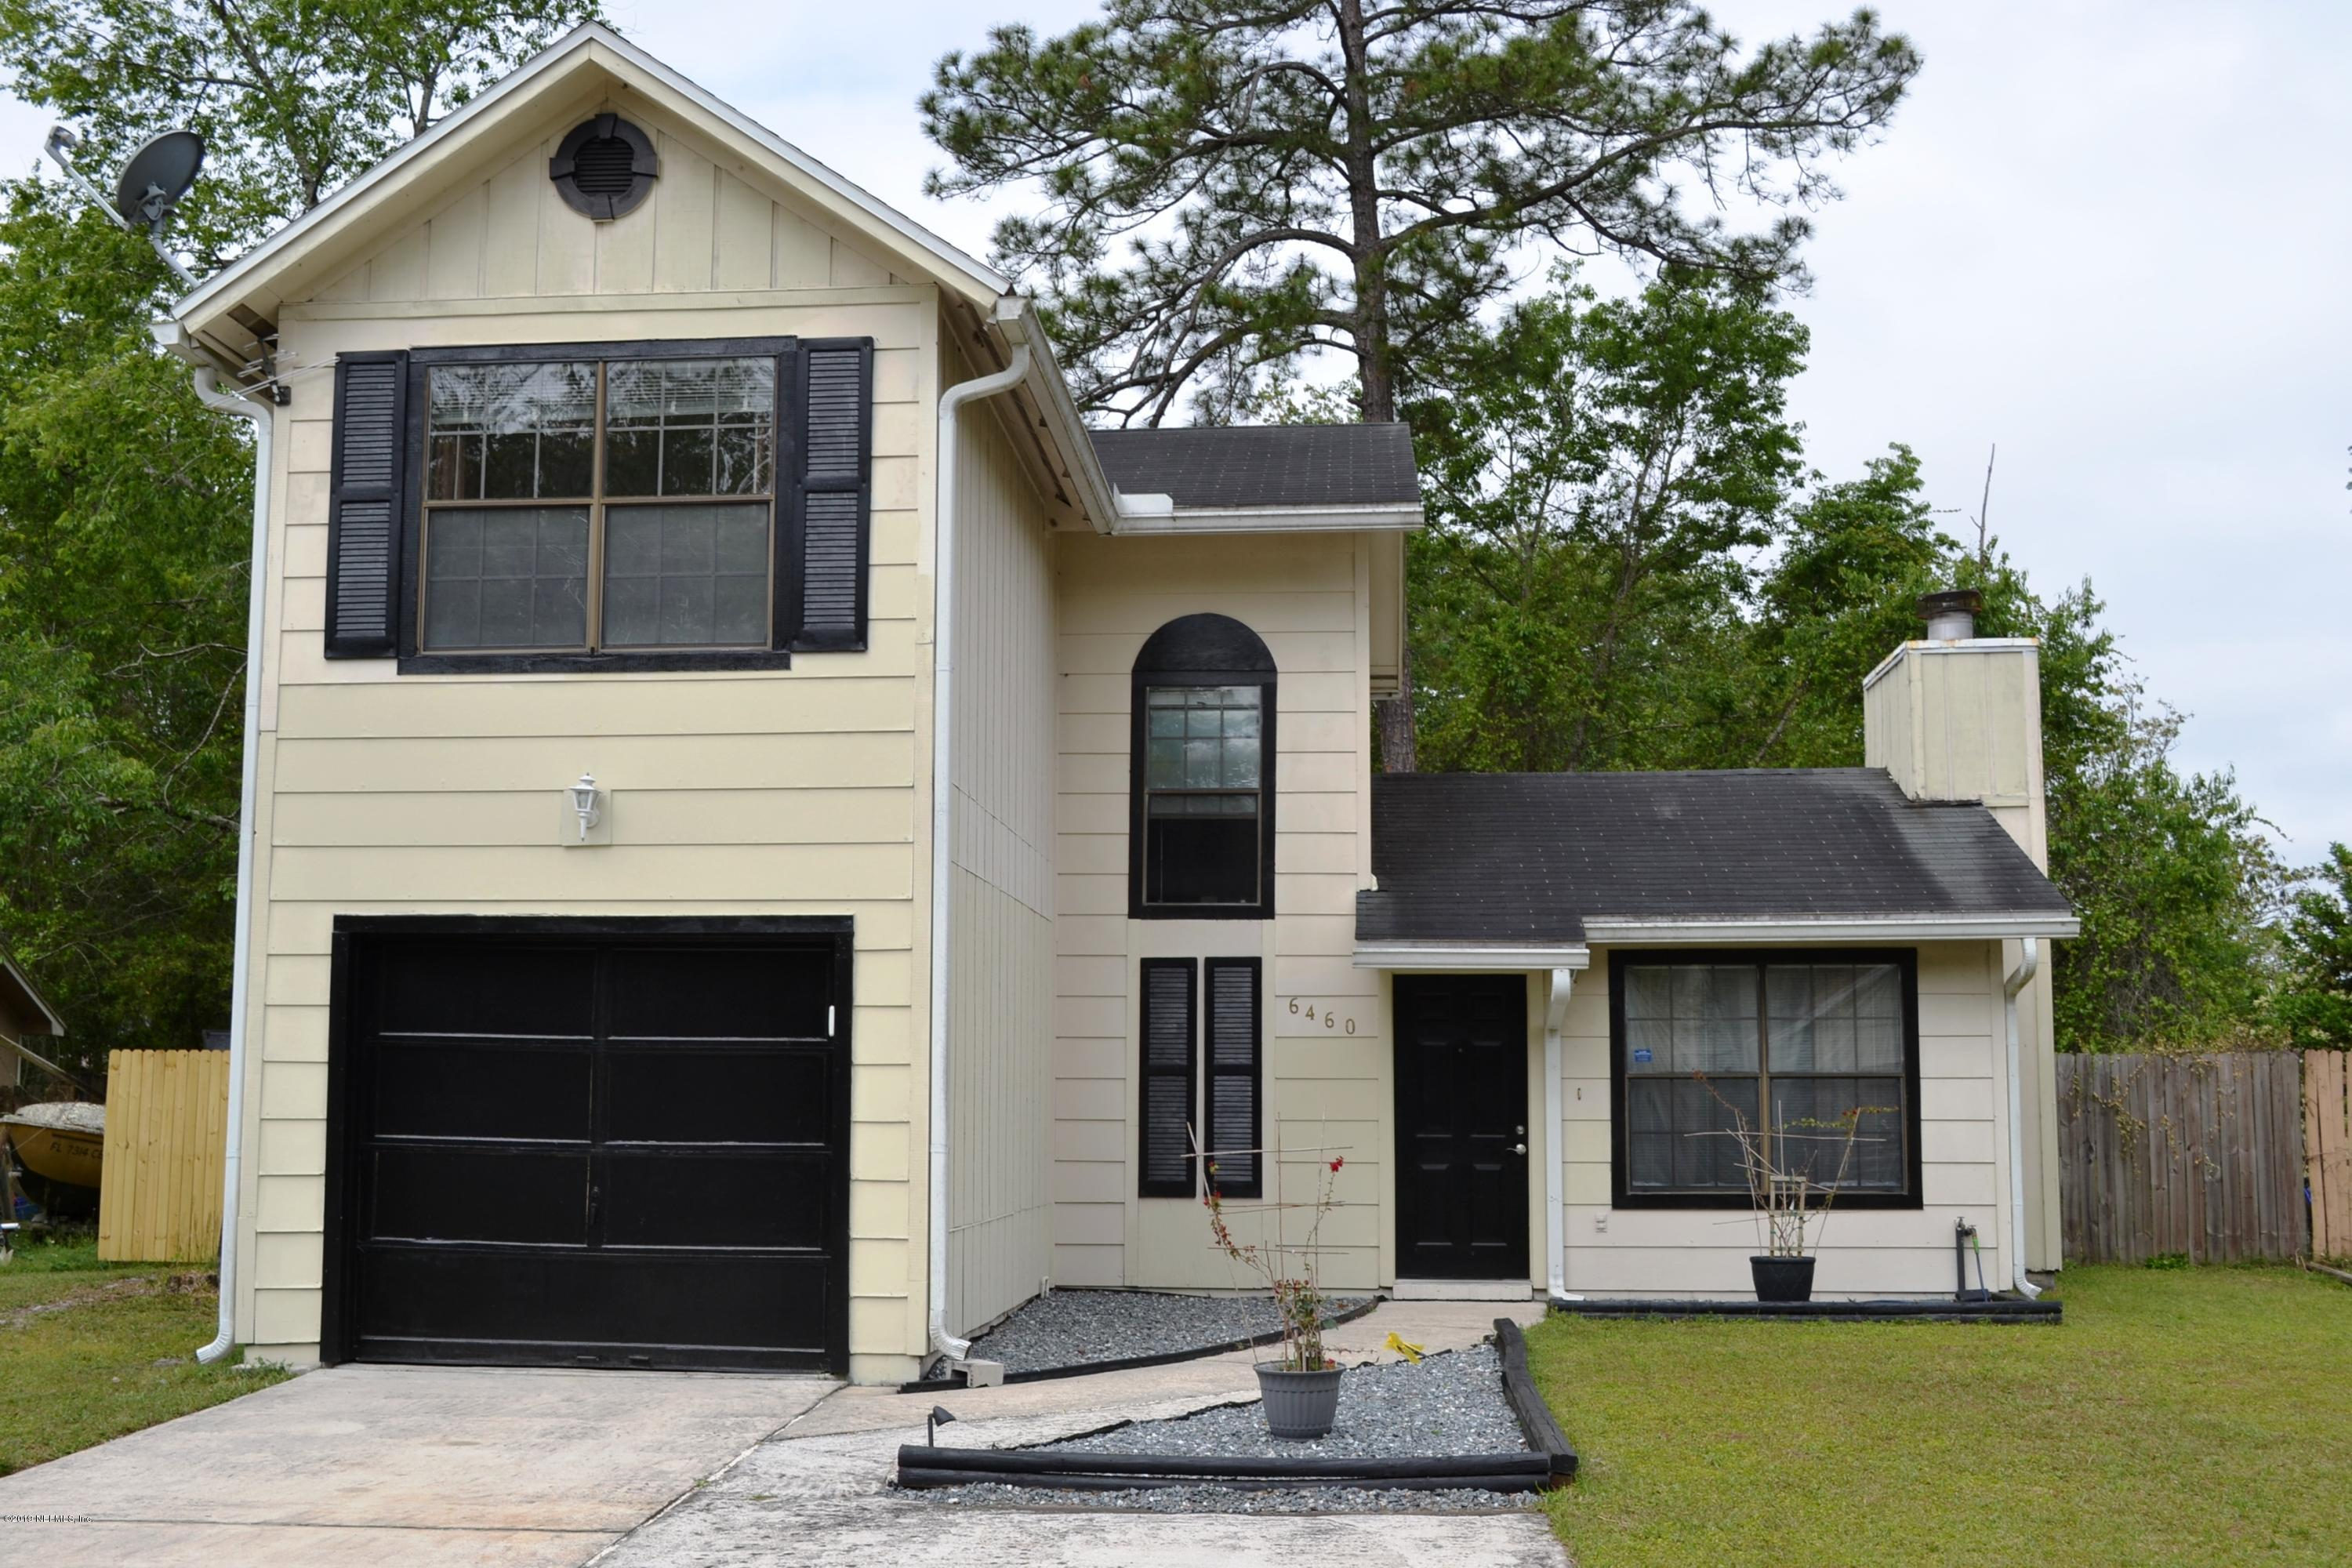 Photo of 6460 SABLE WOODS, JACKSONVILLE, FL 32244